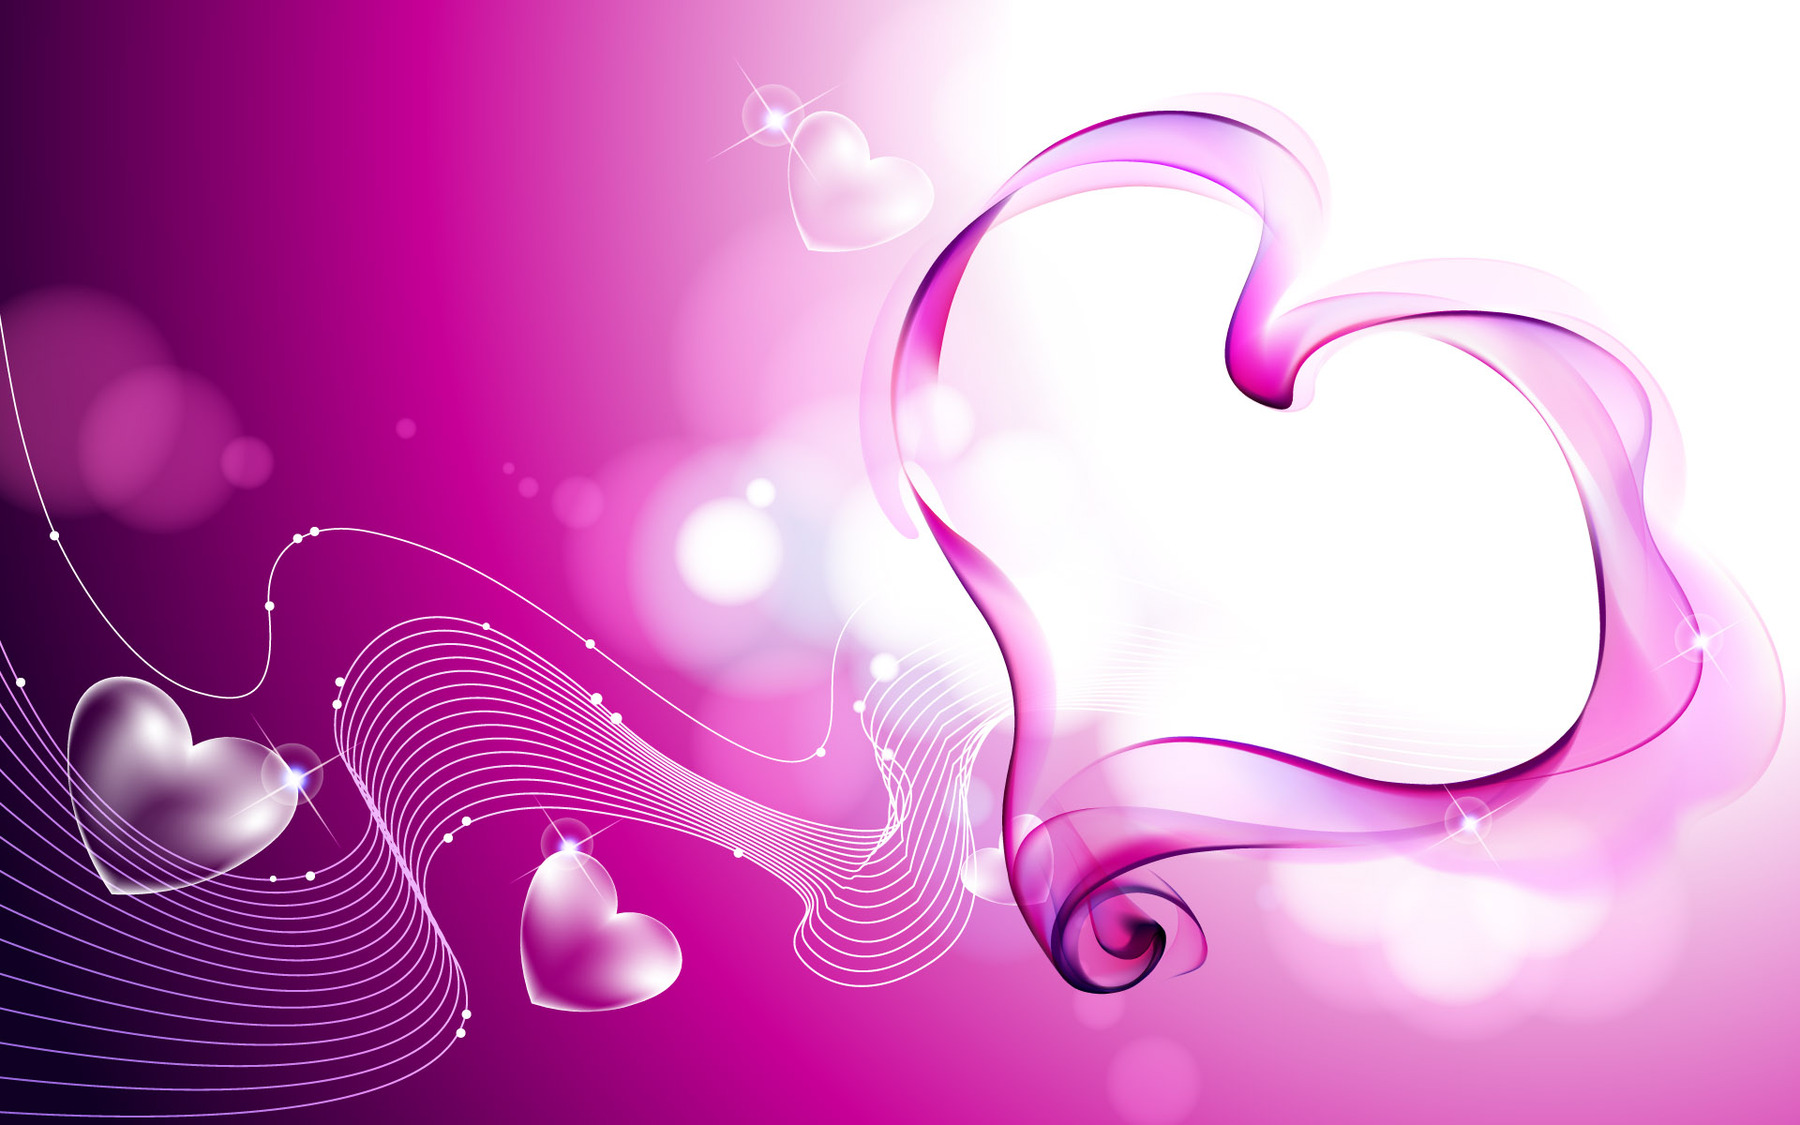 Sweet wallpapers of love 12 free hd wallpaper hdlovewall sweet wallpapers of love hd wallpaper cute love thecheapjerseys Choice Image